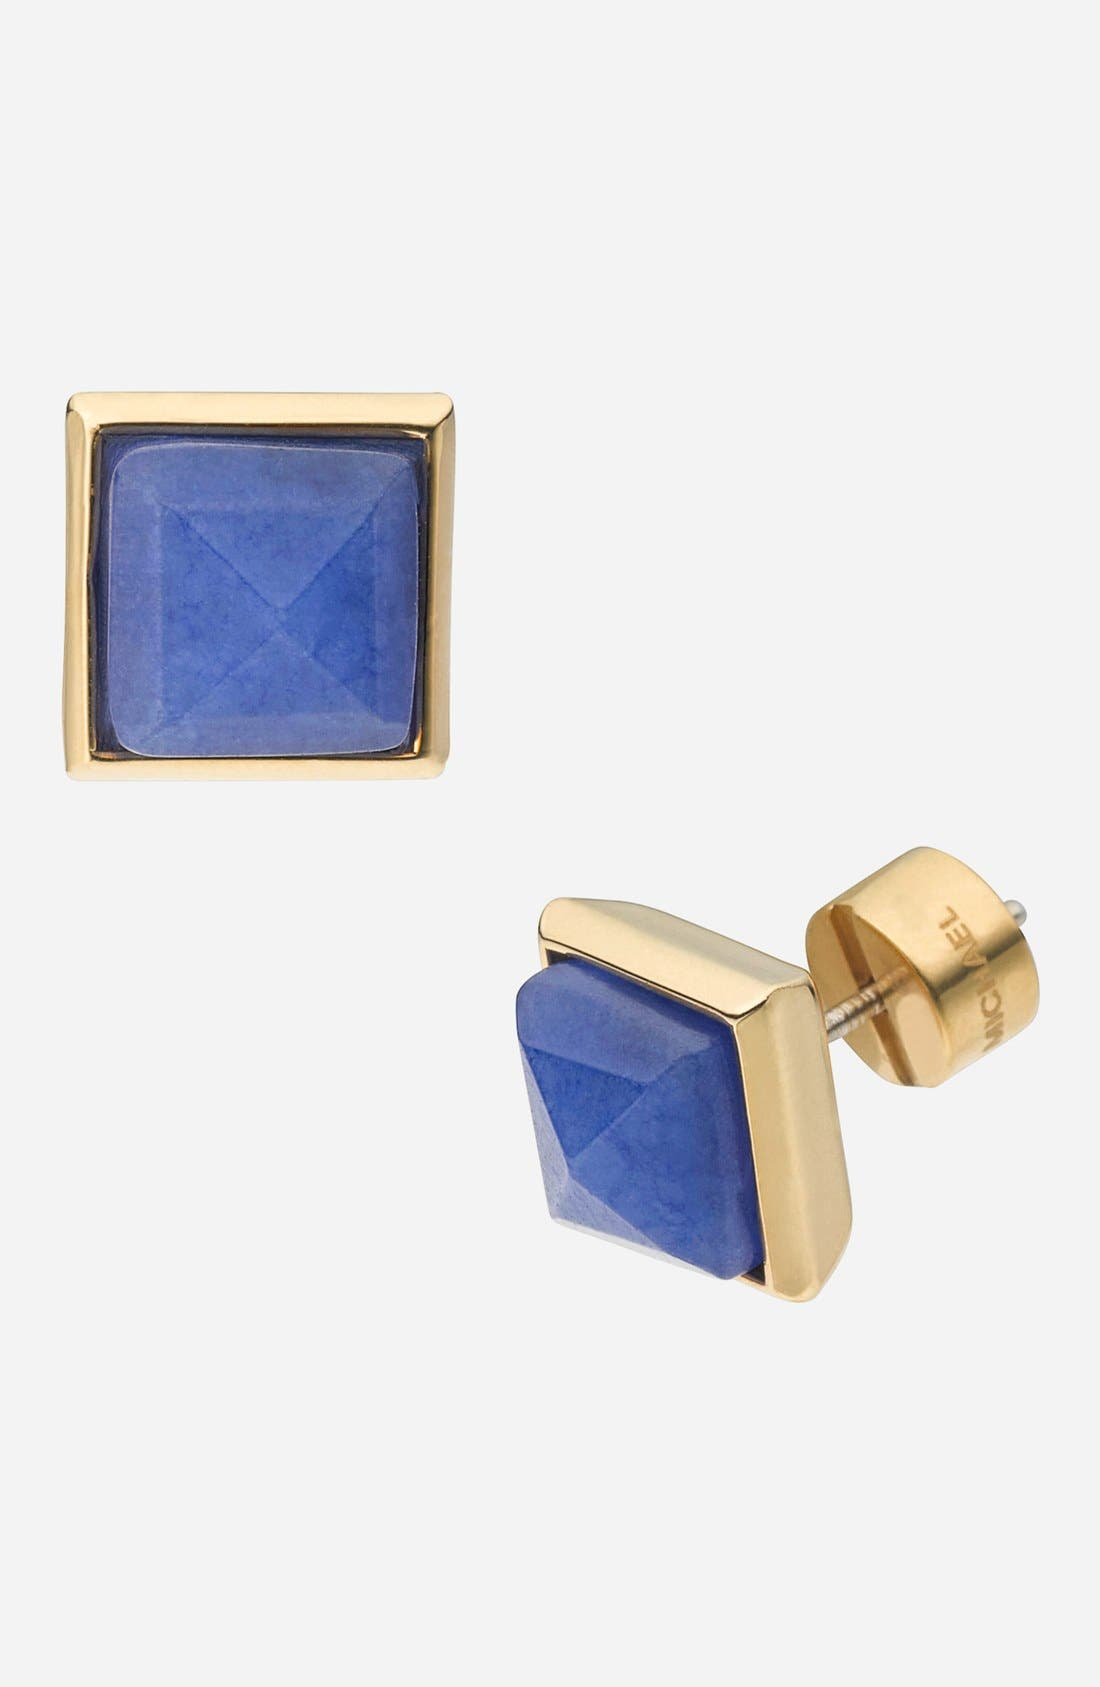 Alternate Image 1 Selected - Michael Kors 'Glam Rock' Stone Pyramid Stud Earrings